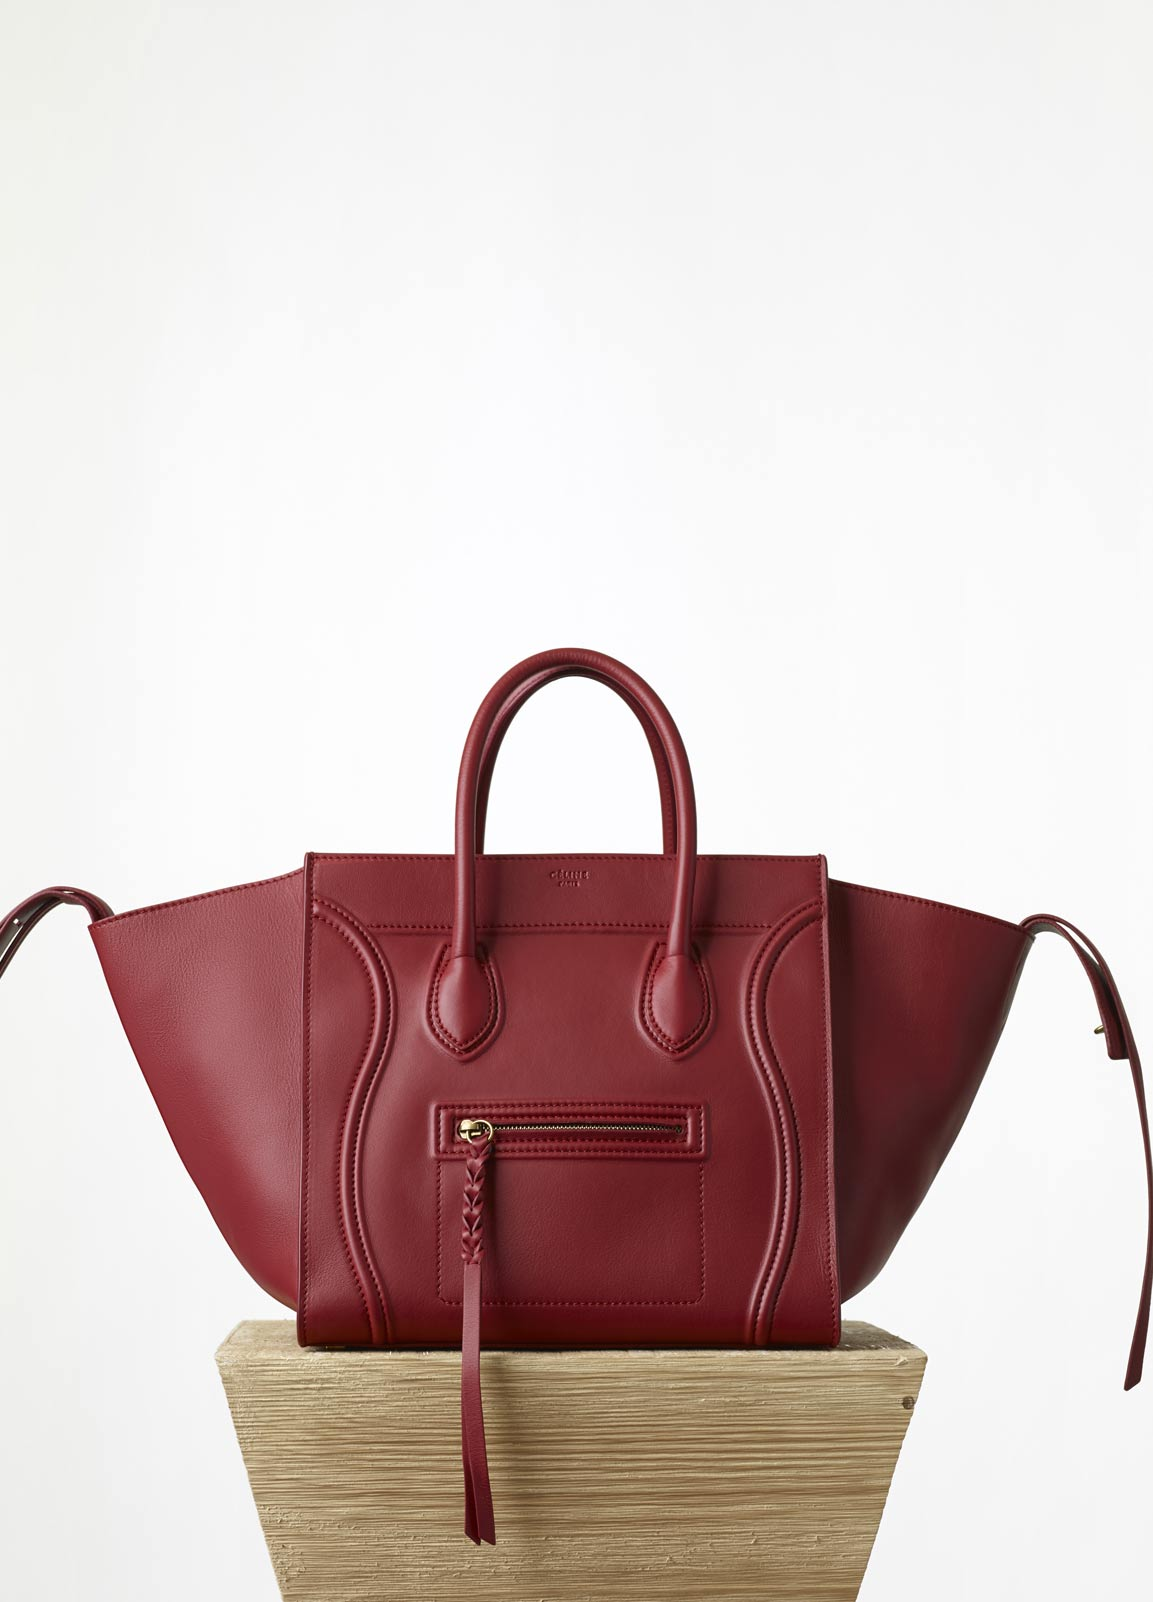 celine luggage phantom phython leather